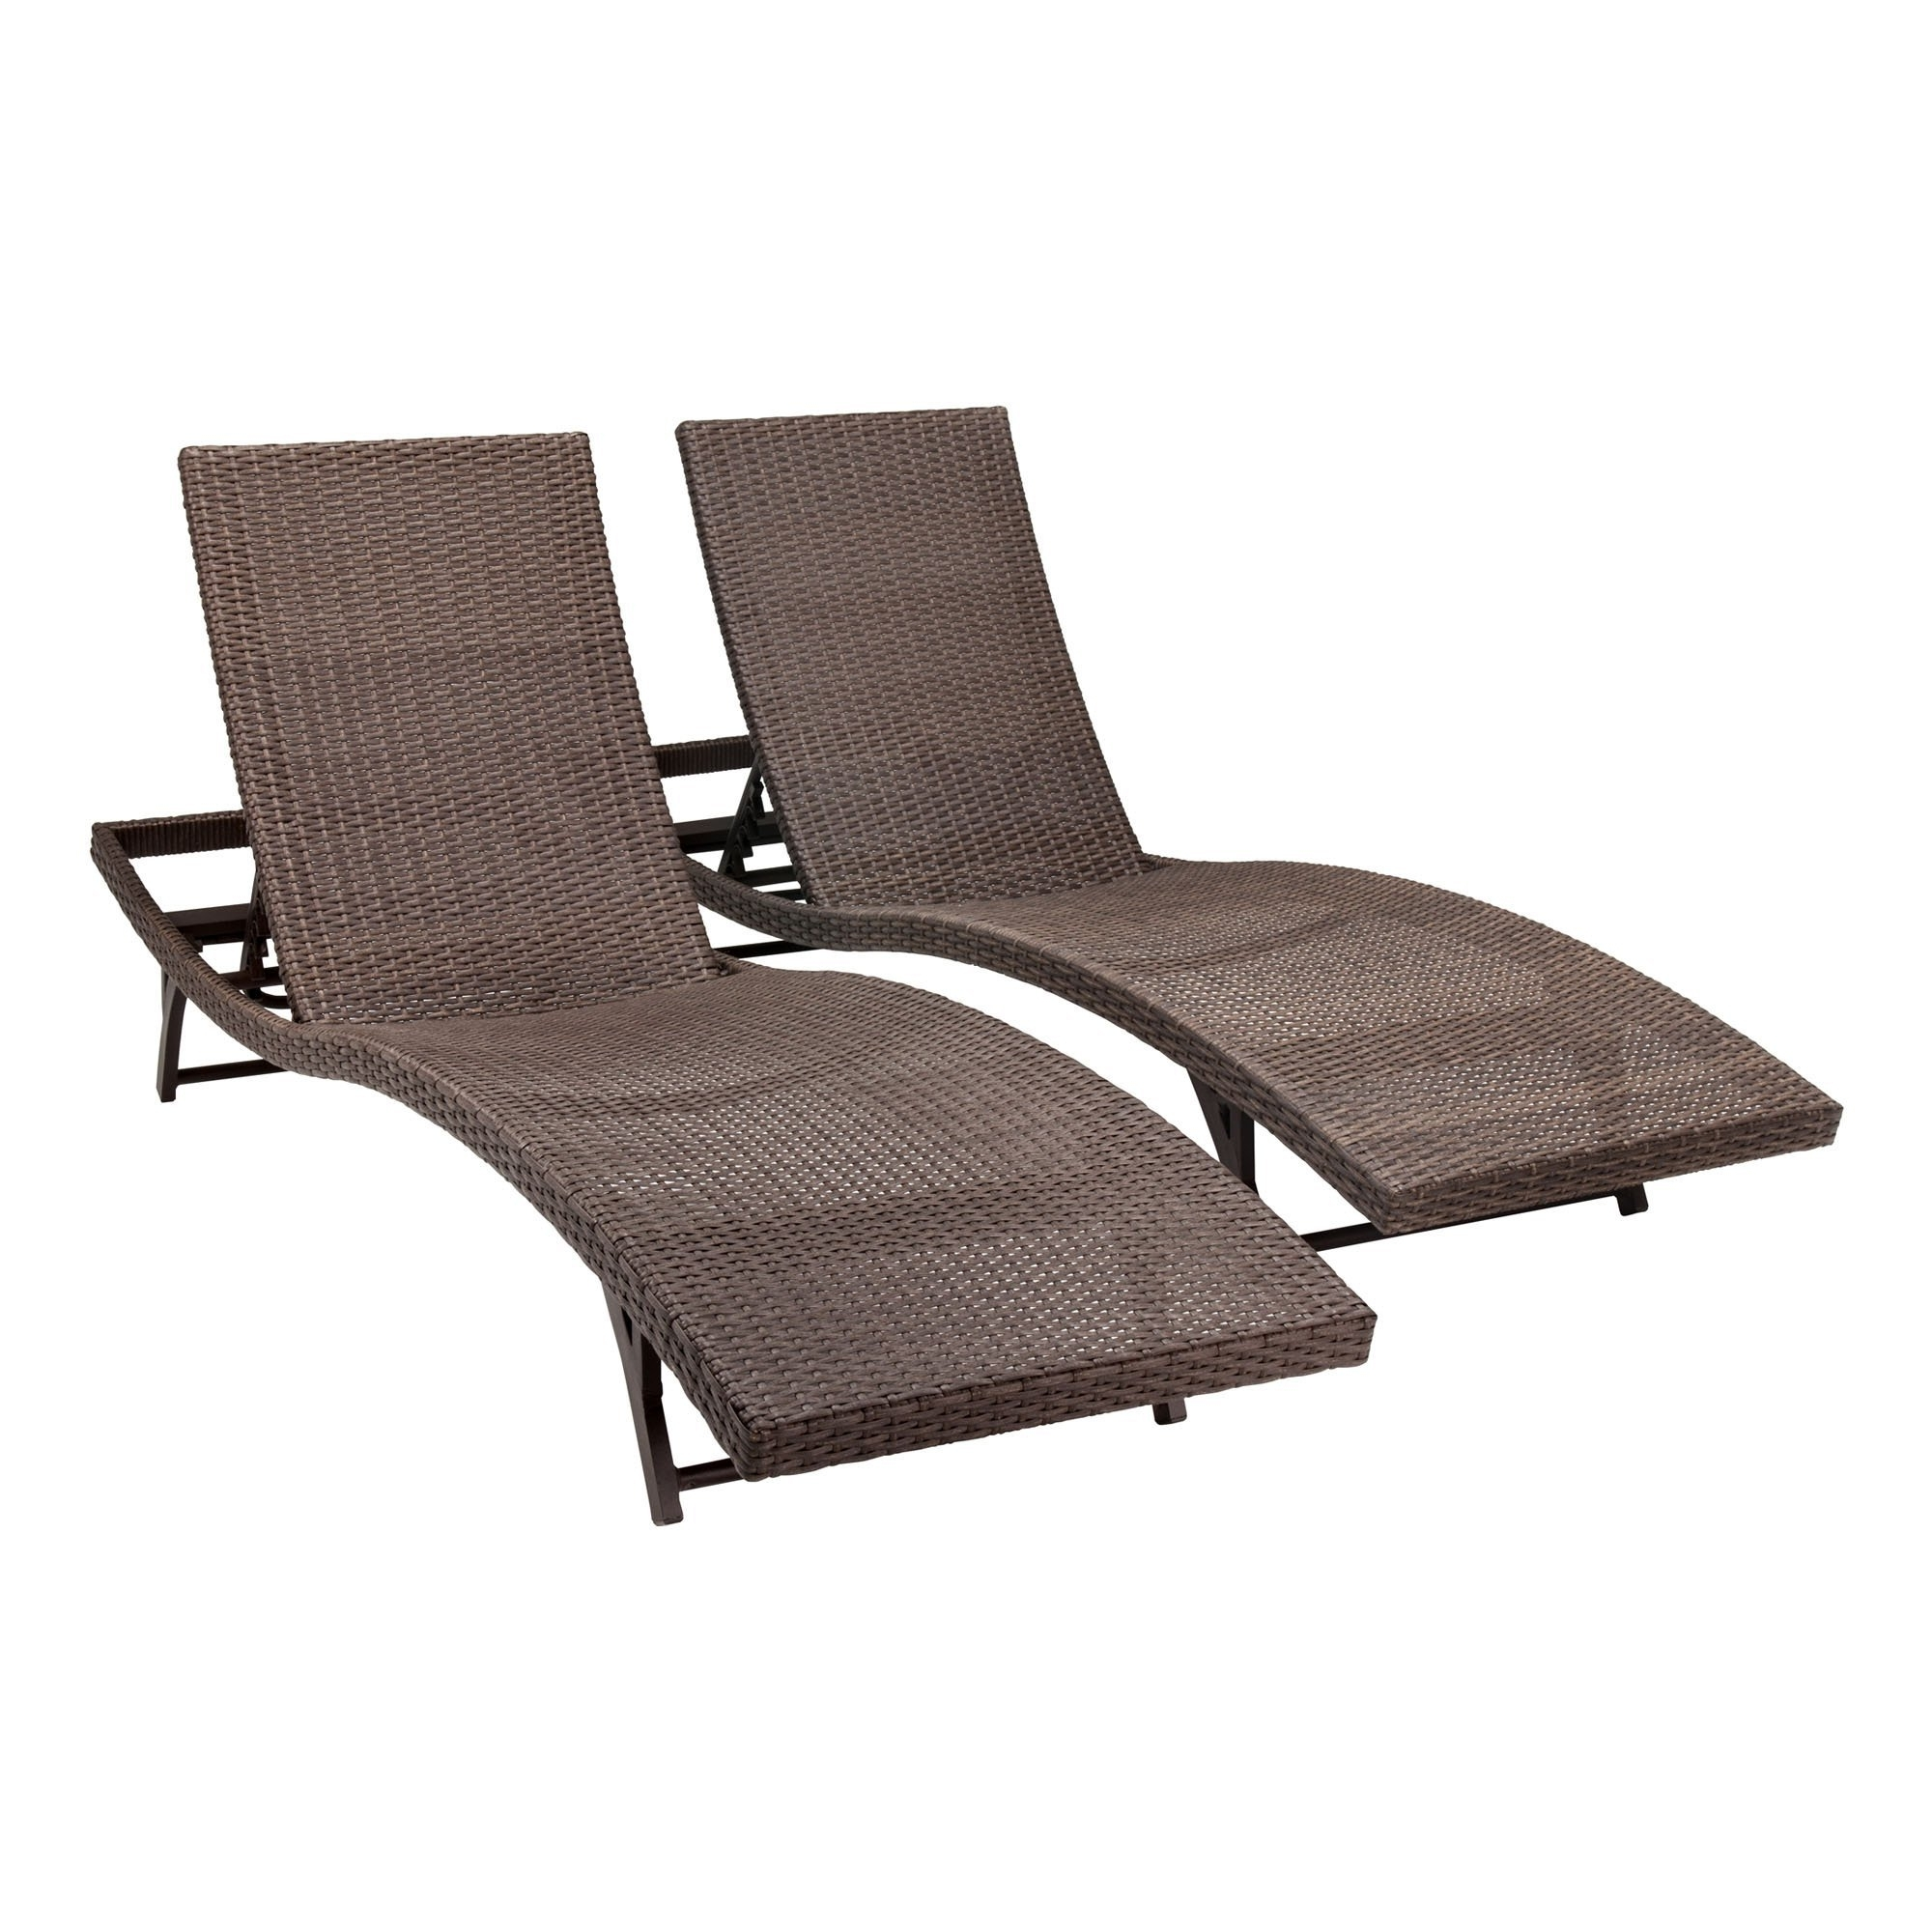 Latest Outdoor Chaise Lounge Chairs Ideas : Best Outdoor Chaise Lounge Intended For Pool Chaise Lounge Chairs (View 5 of 15)